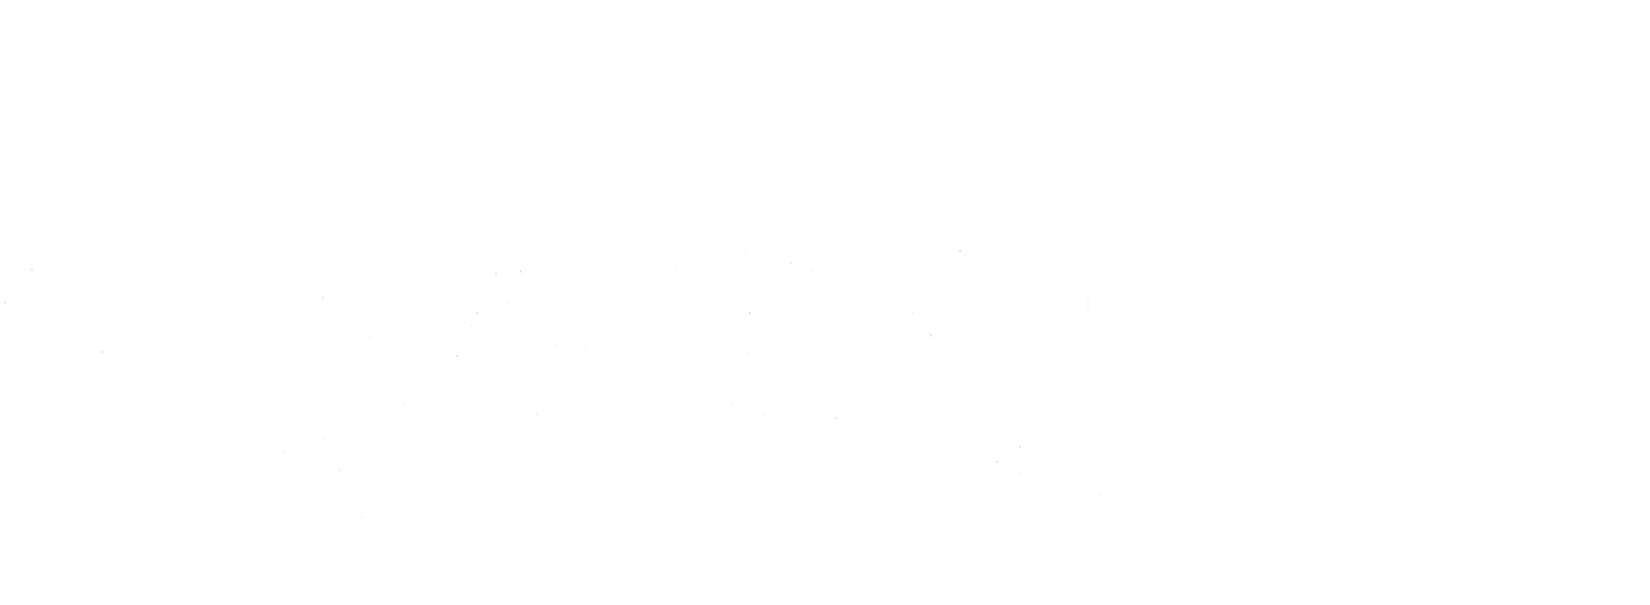 http://www.thisisxyz.com/wp-content/uploads/2017/08/Singapore-airlines-white-logo.png